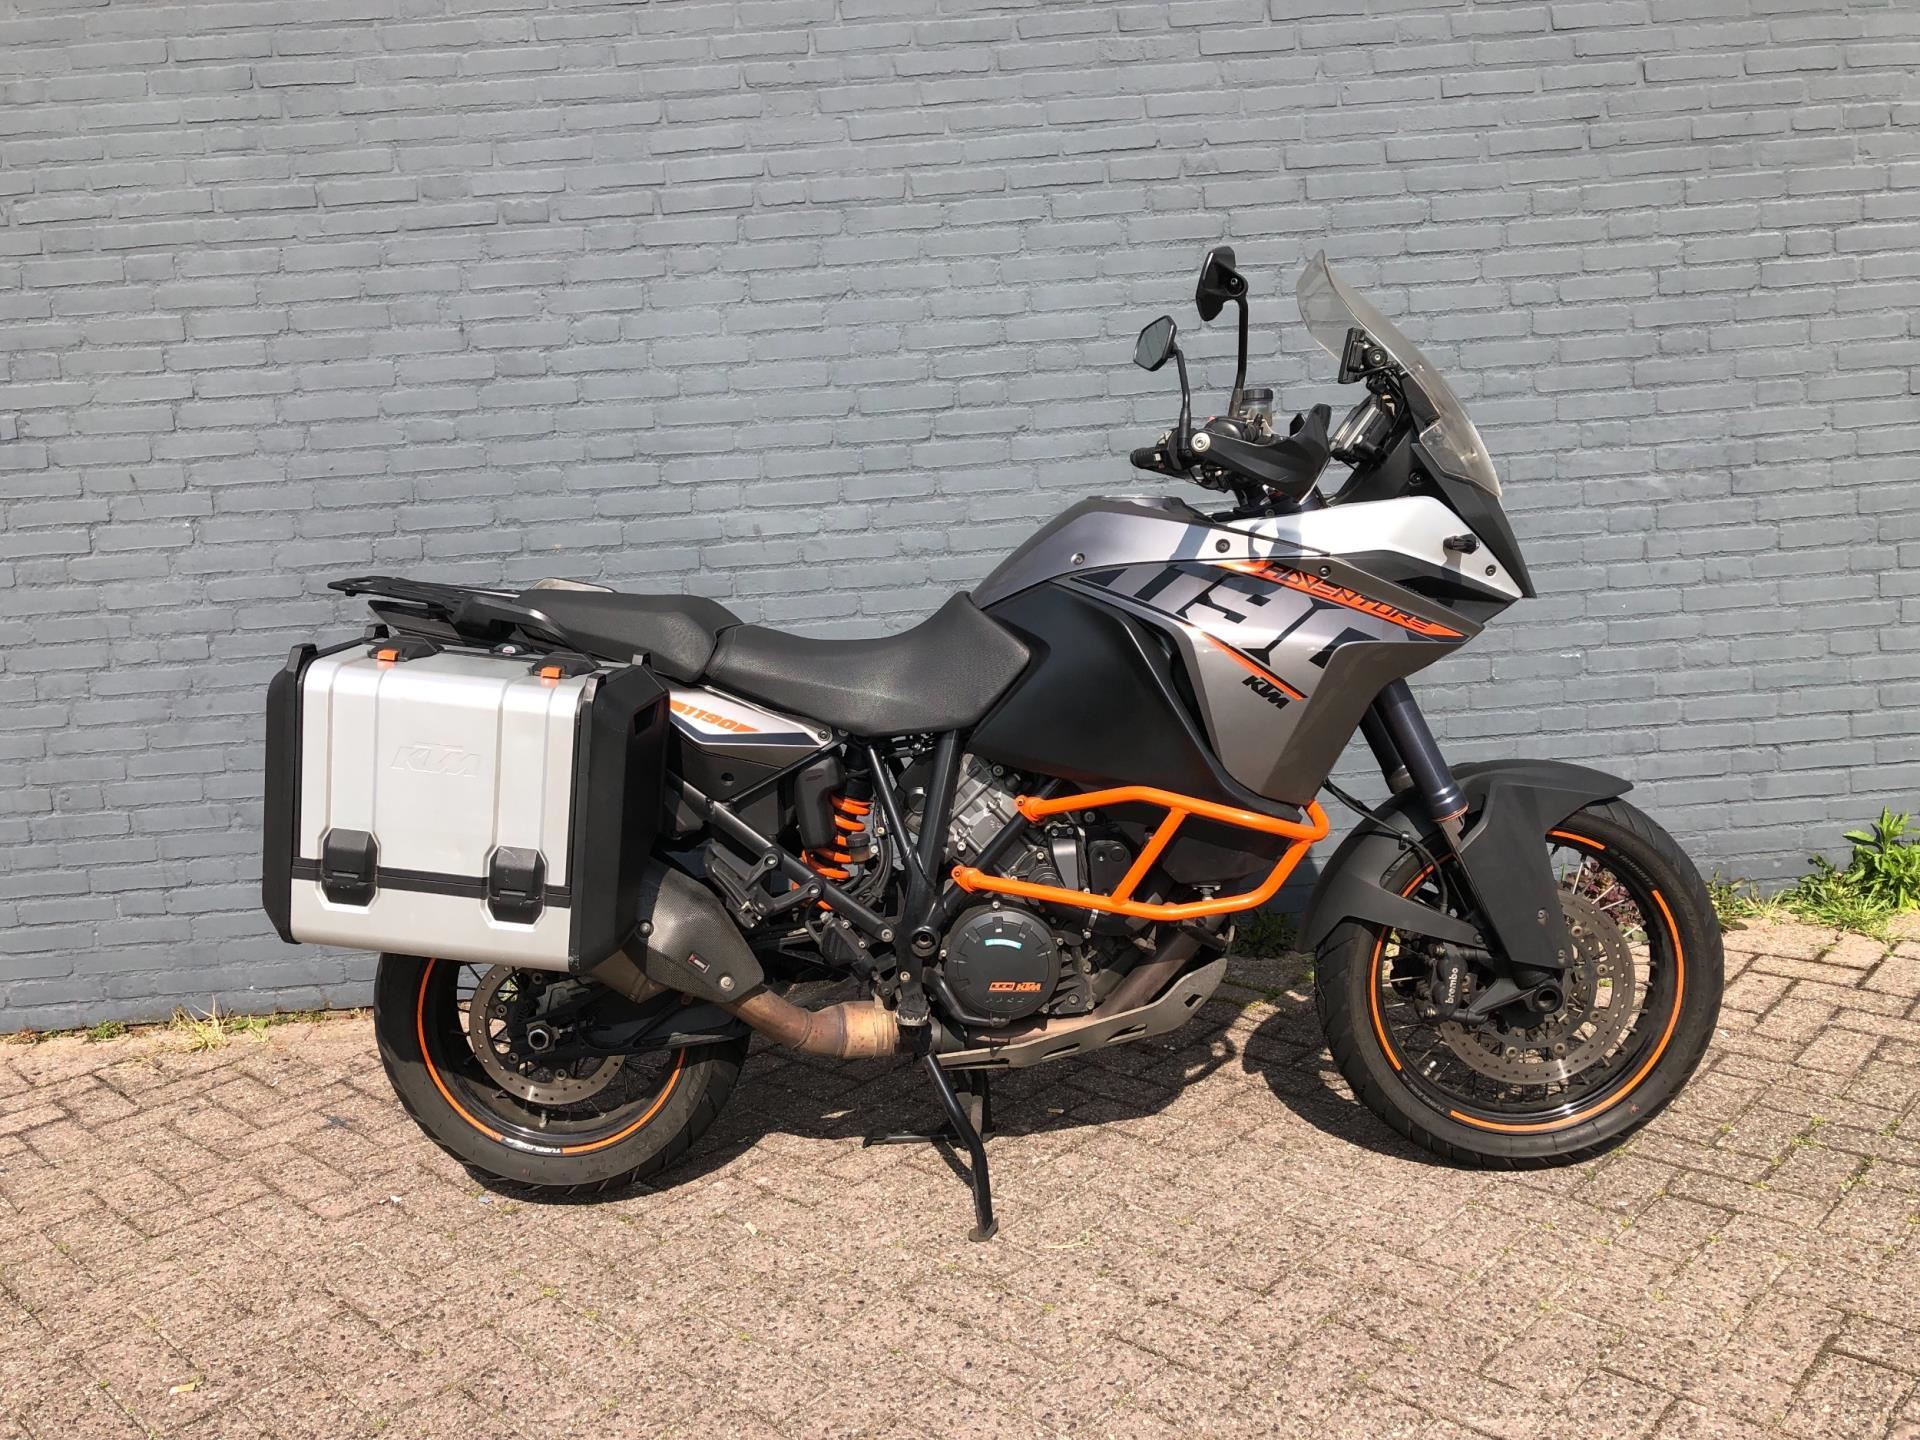 KTM Off-Road occasion - Auto Leiderdorp